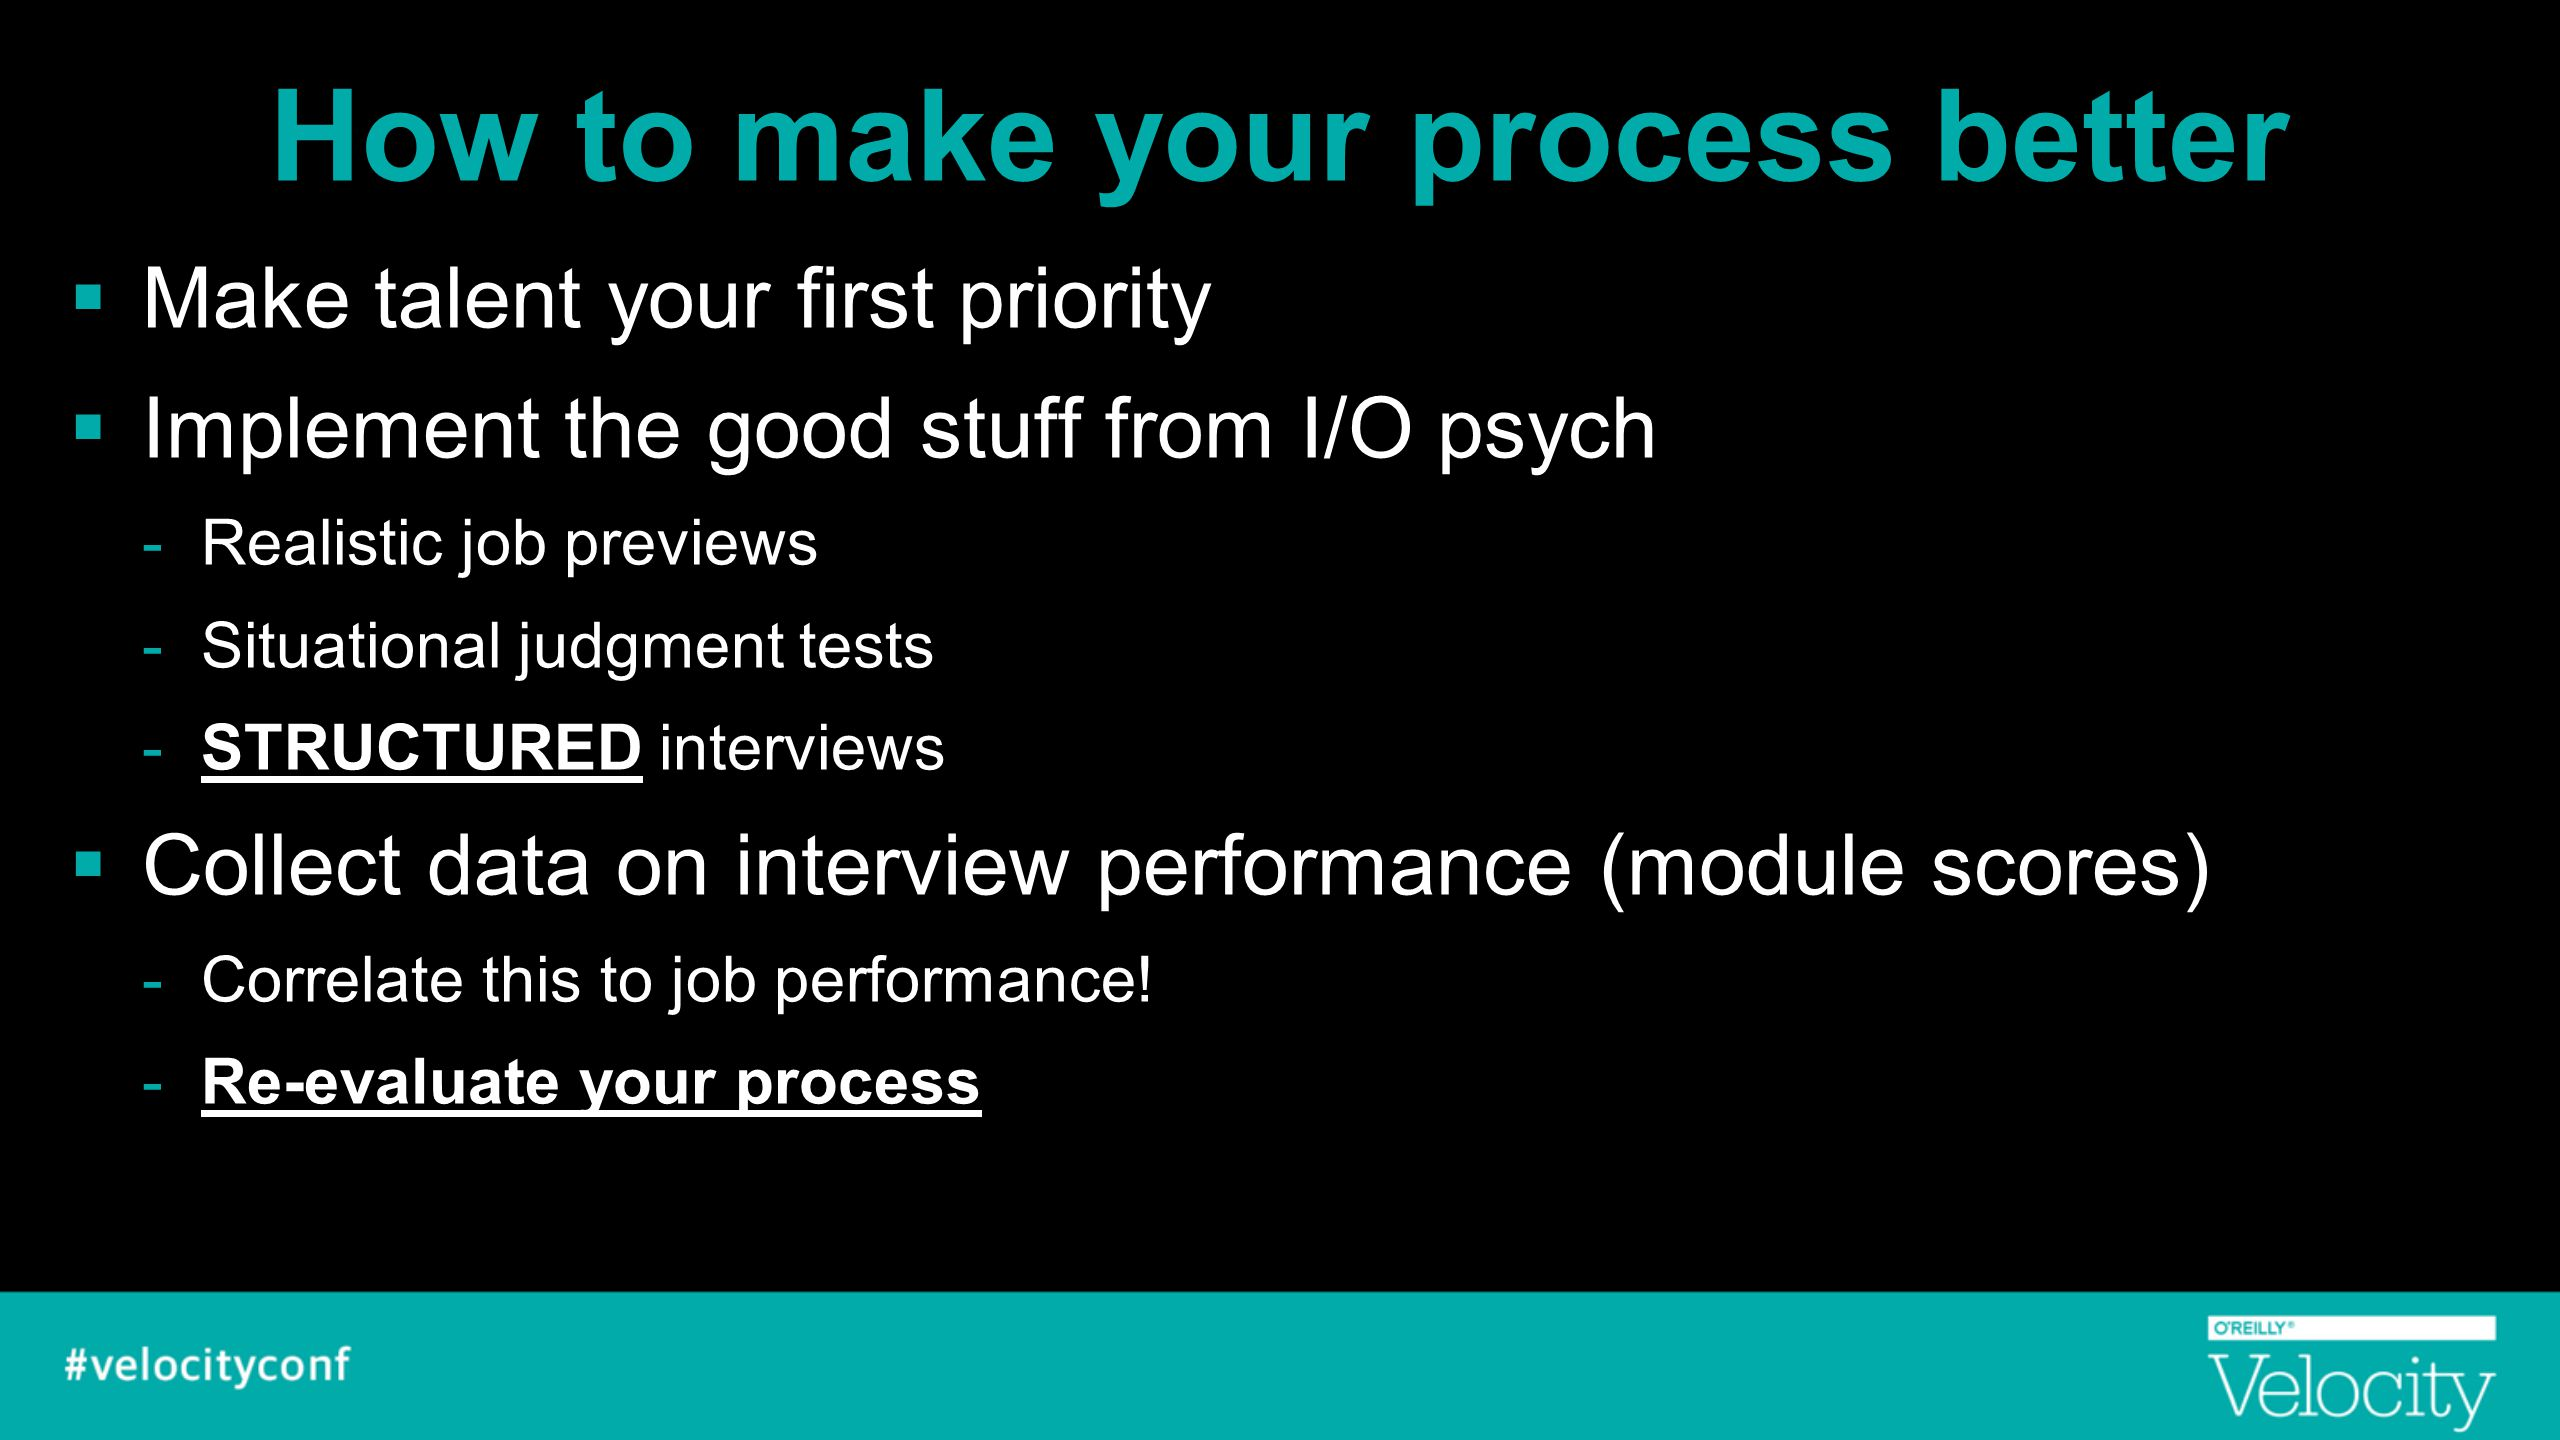 How to make your process better